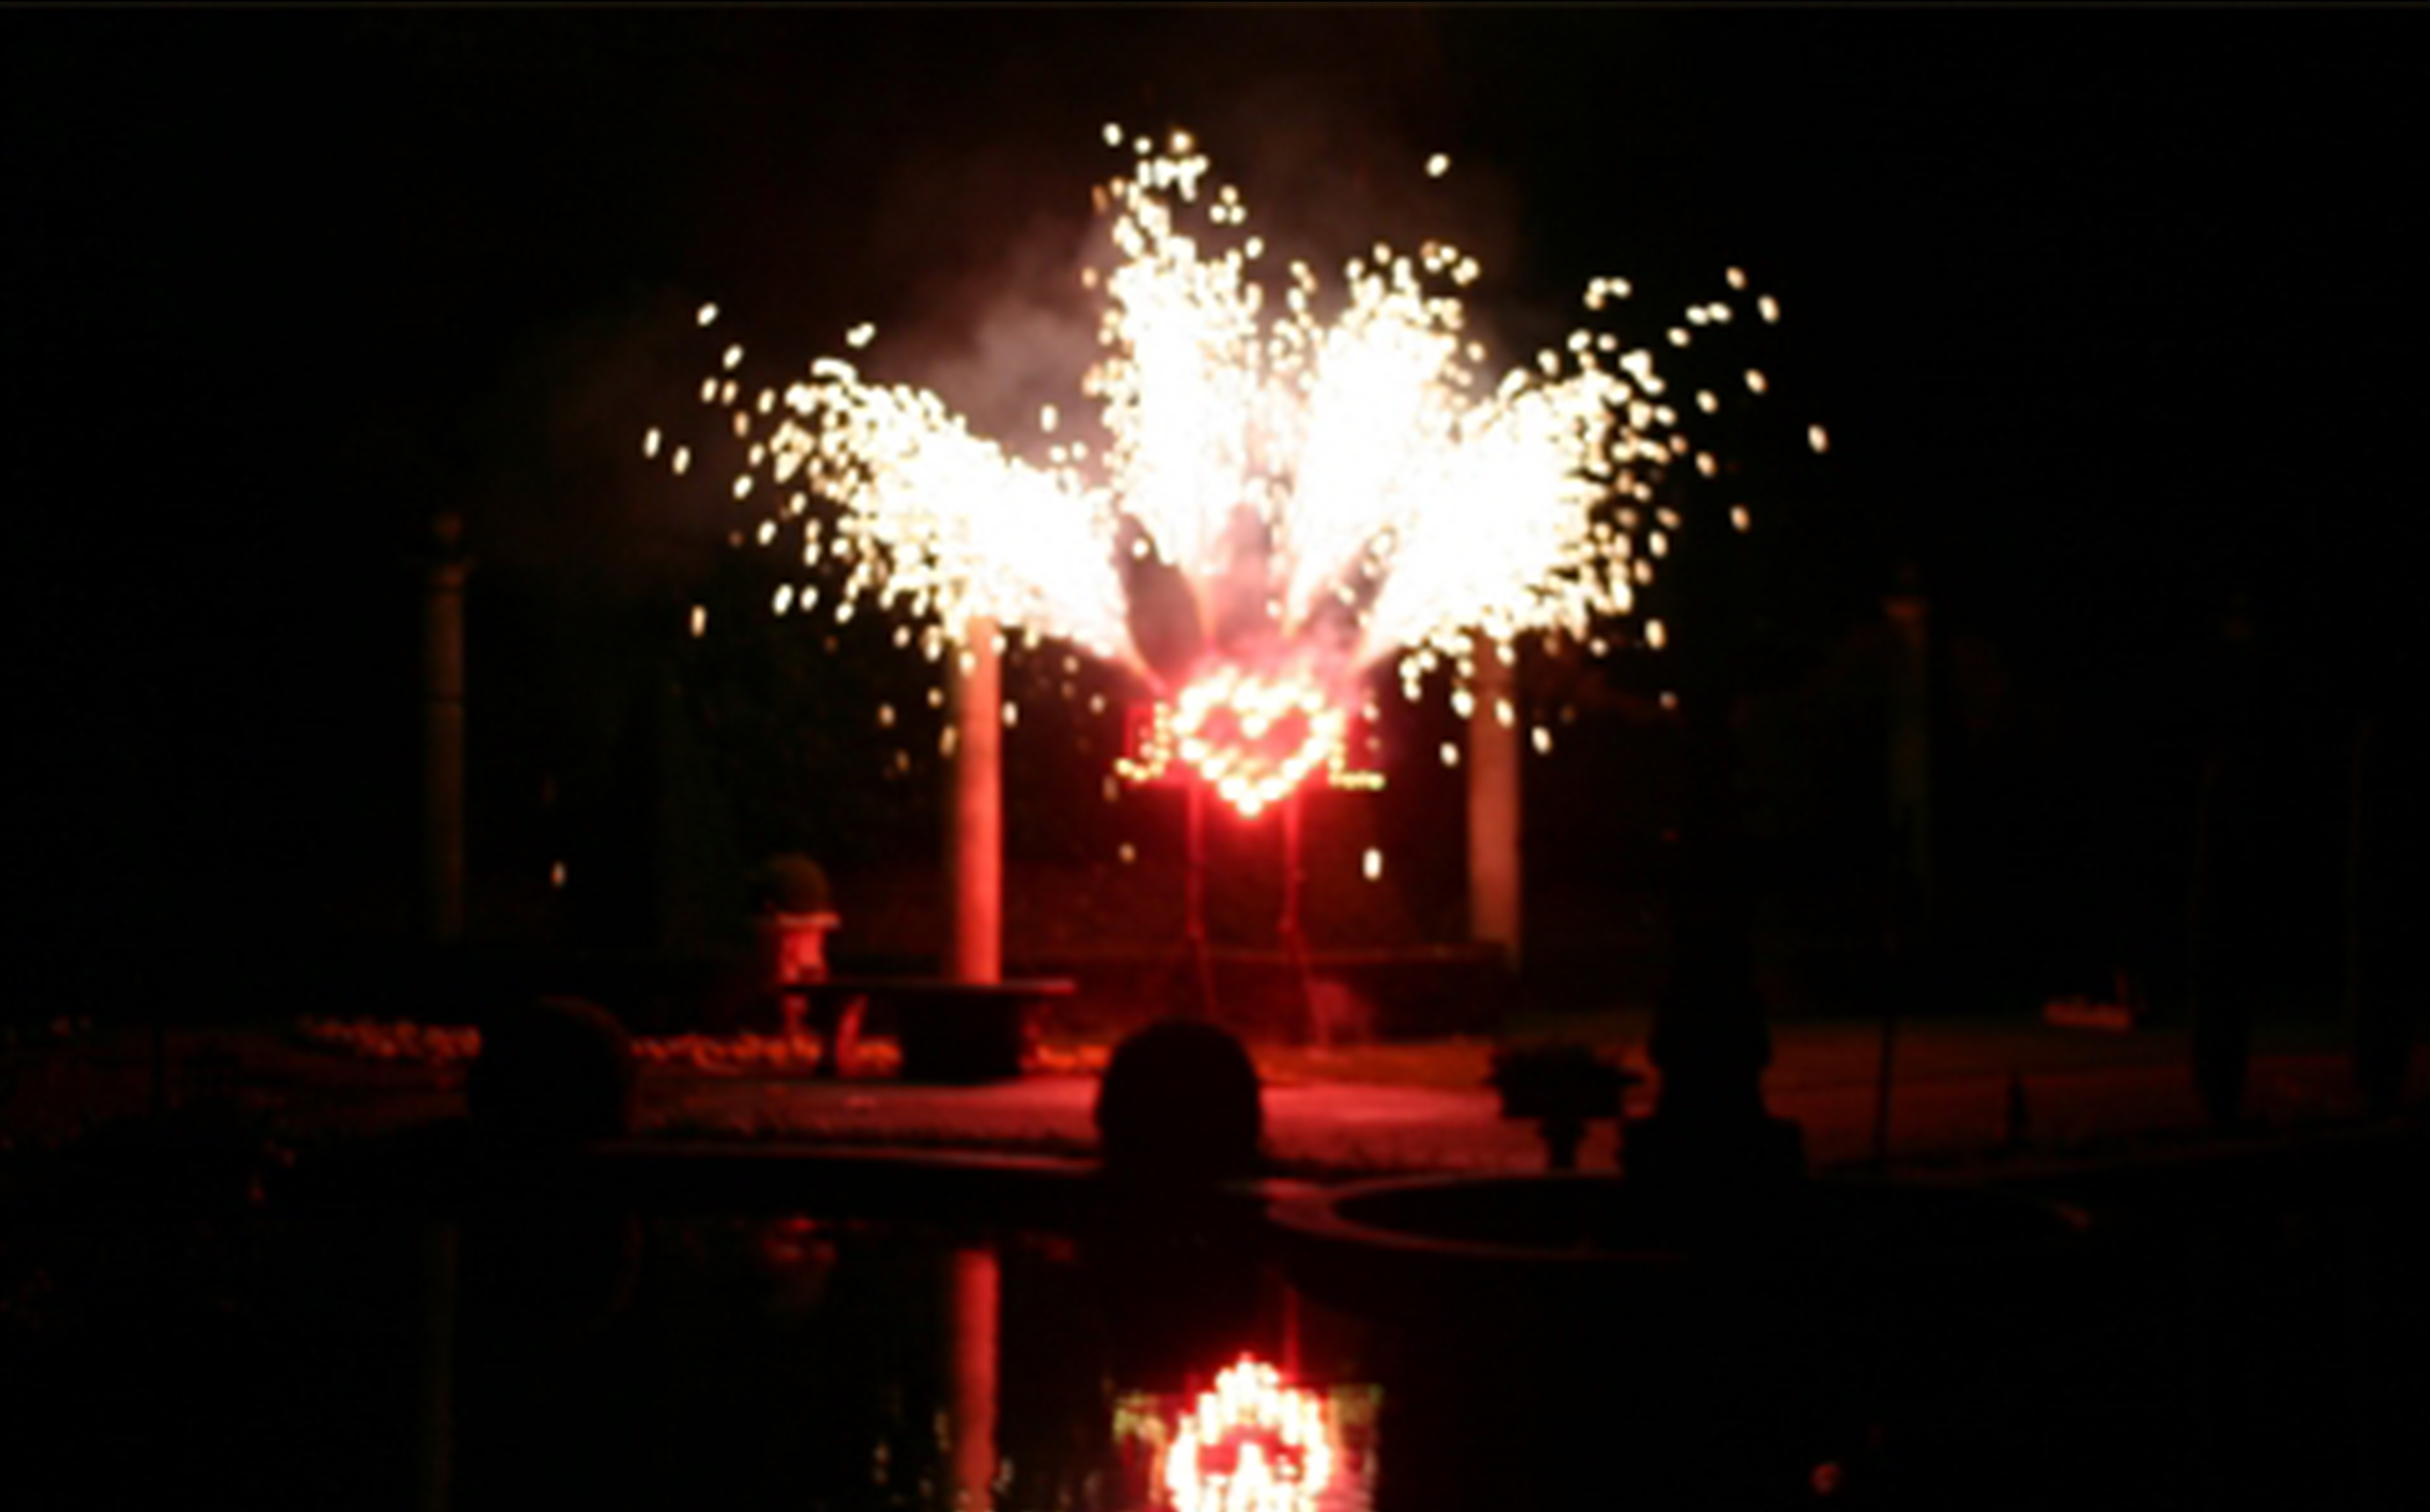 A Firework Solutions Limited wedding display, featuring a red heart for the happy couple